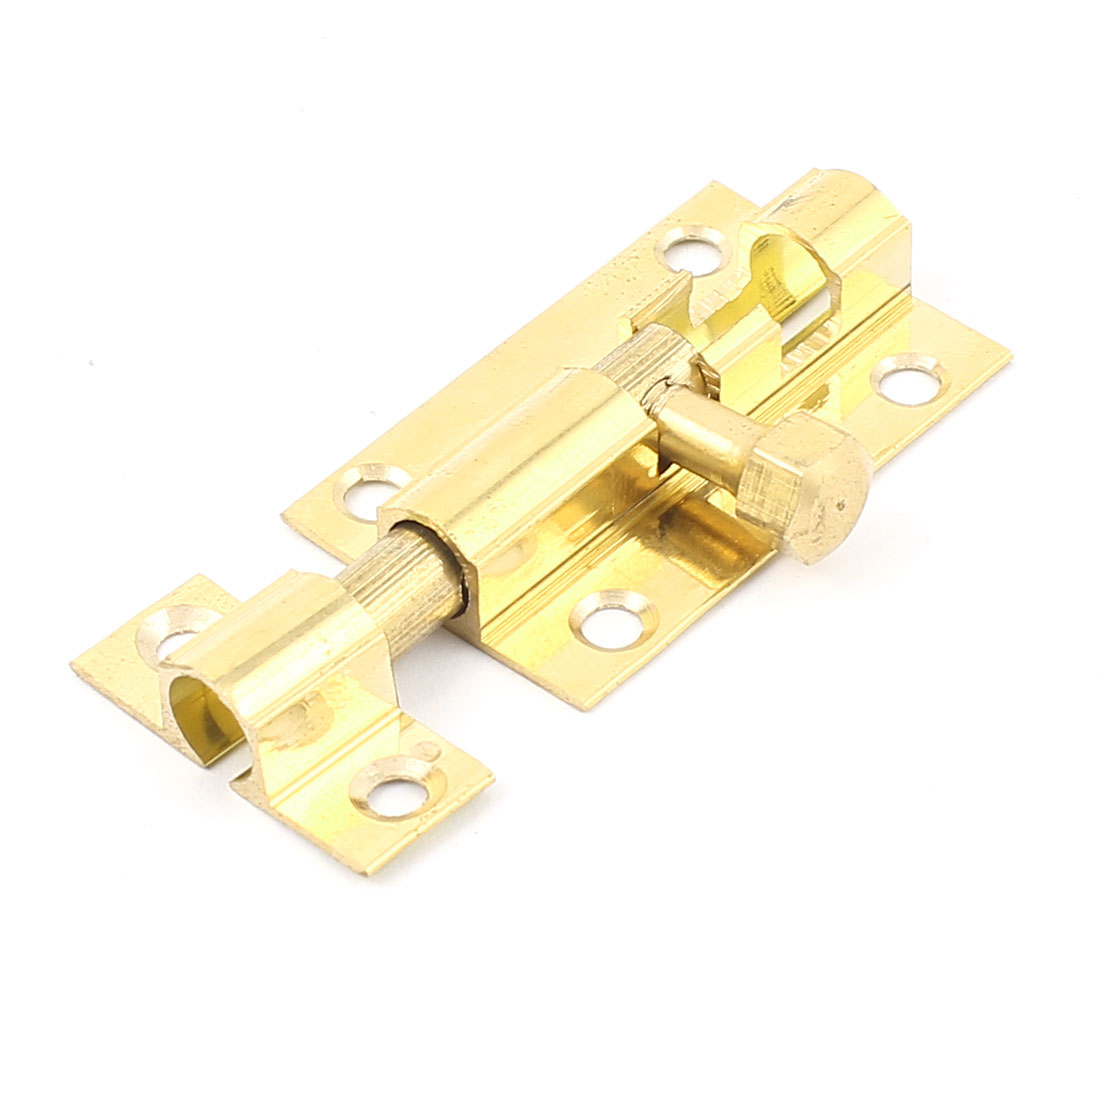 Home Cabinet Door Safety Slide Latch Lock Metal Barrel Bolt Hasp Gold Tone